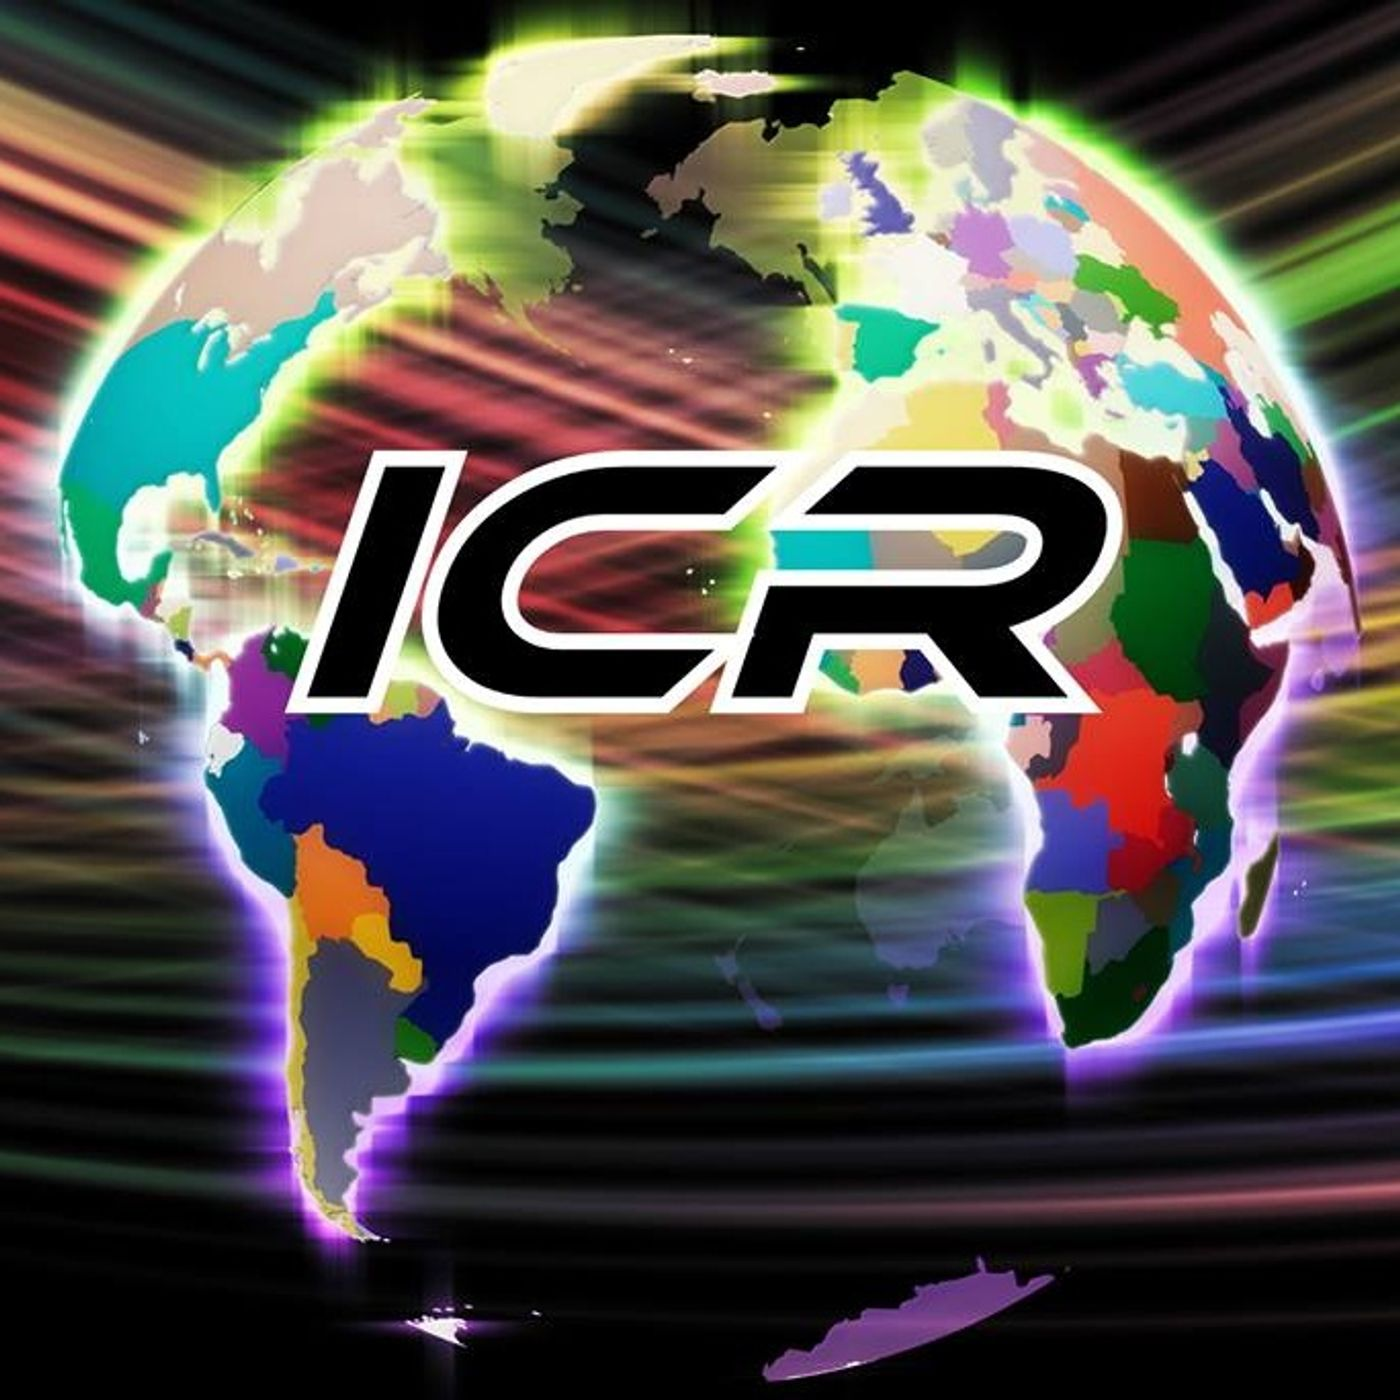 International Connection Radio's tracks